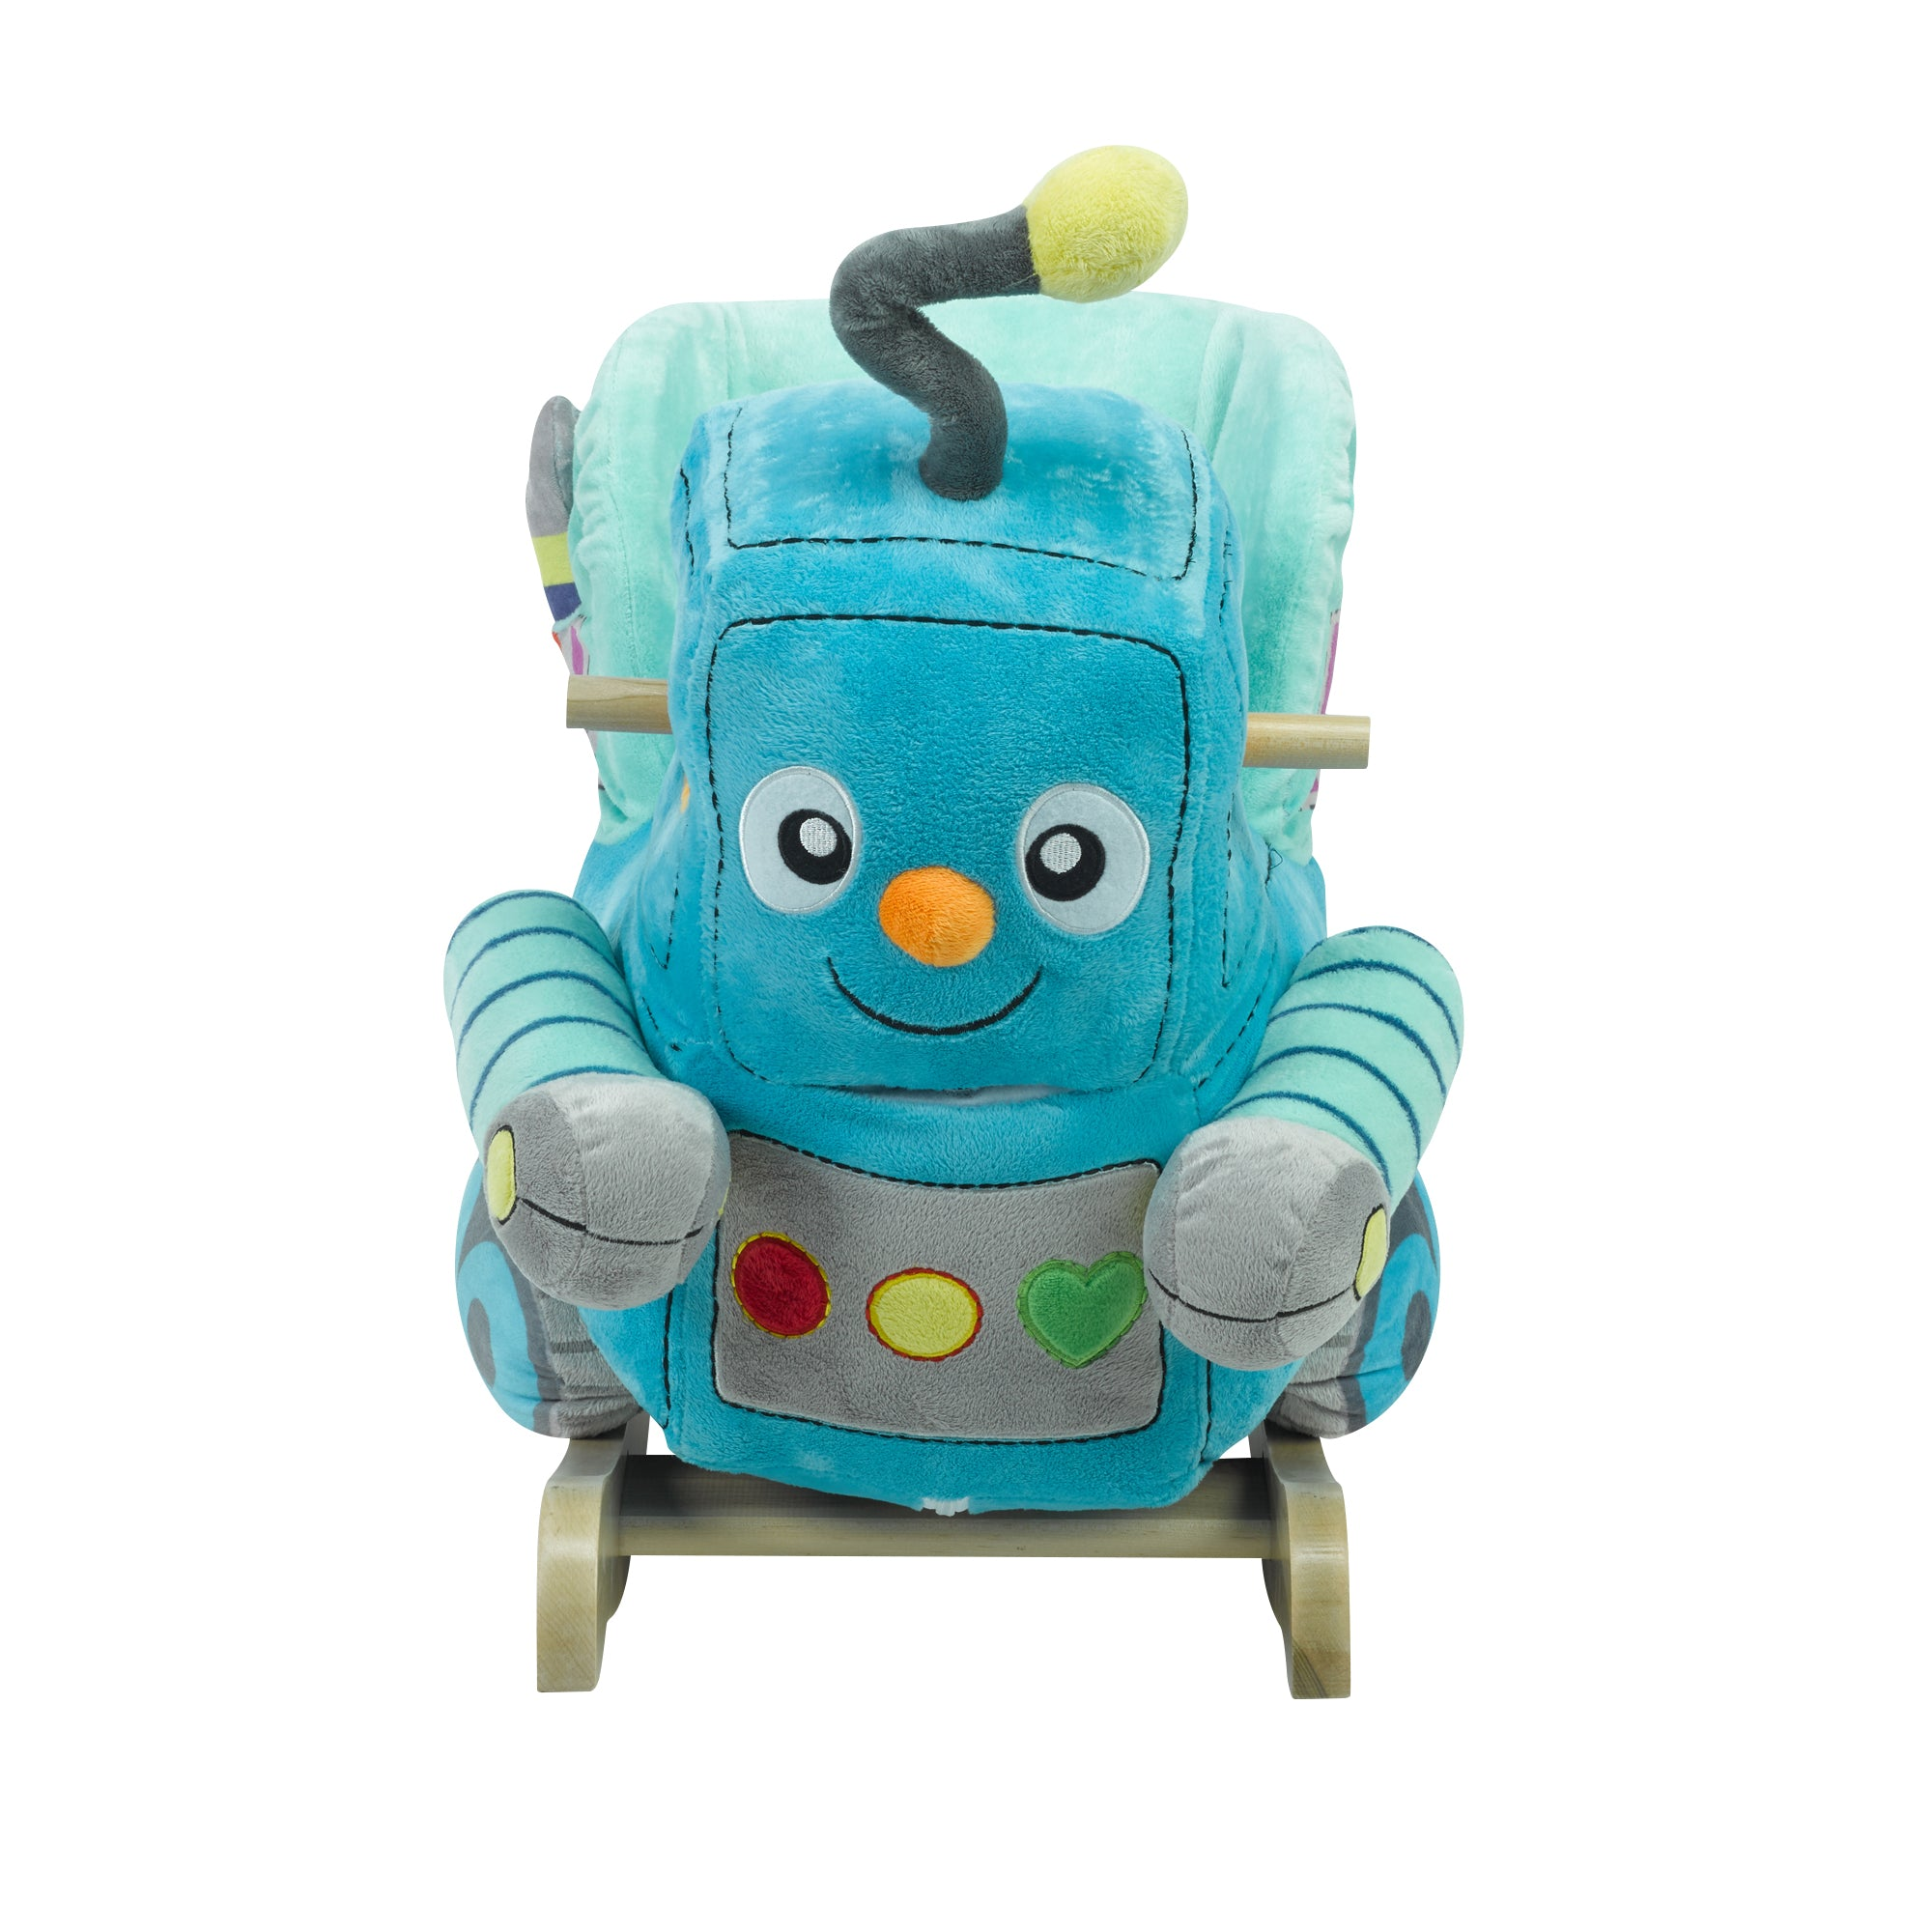 Chip the Robot Chair Rocker